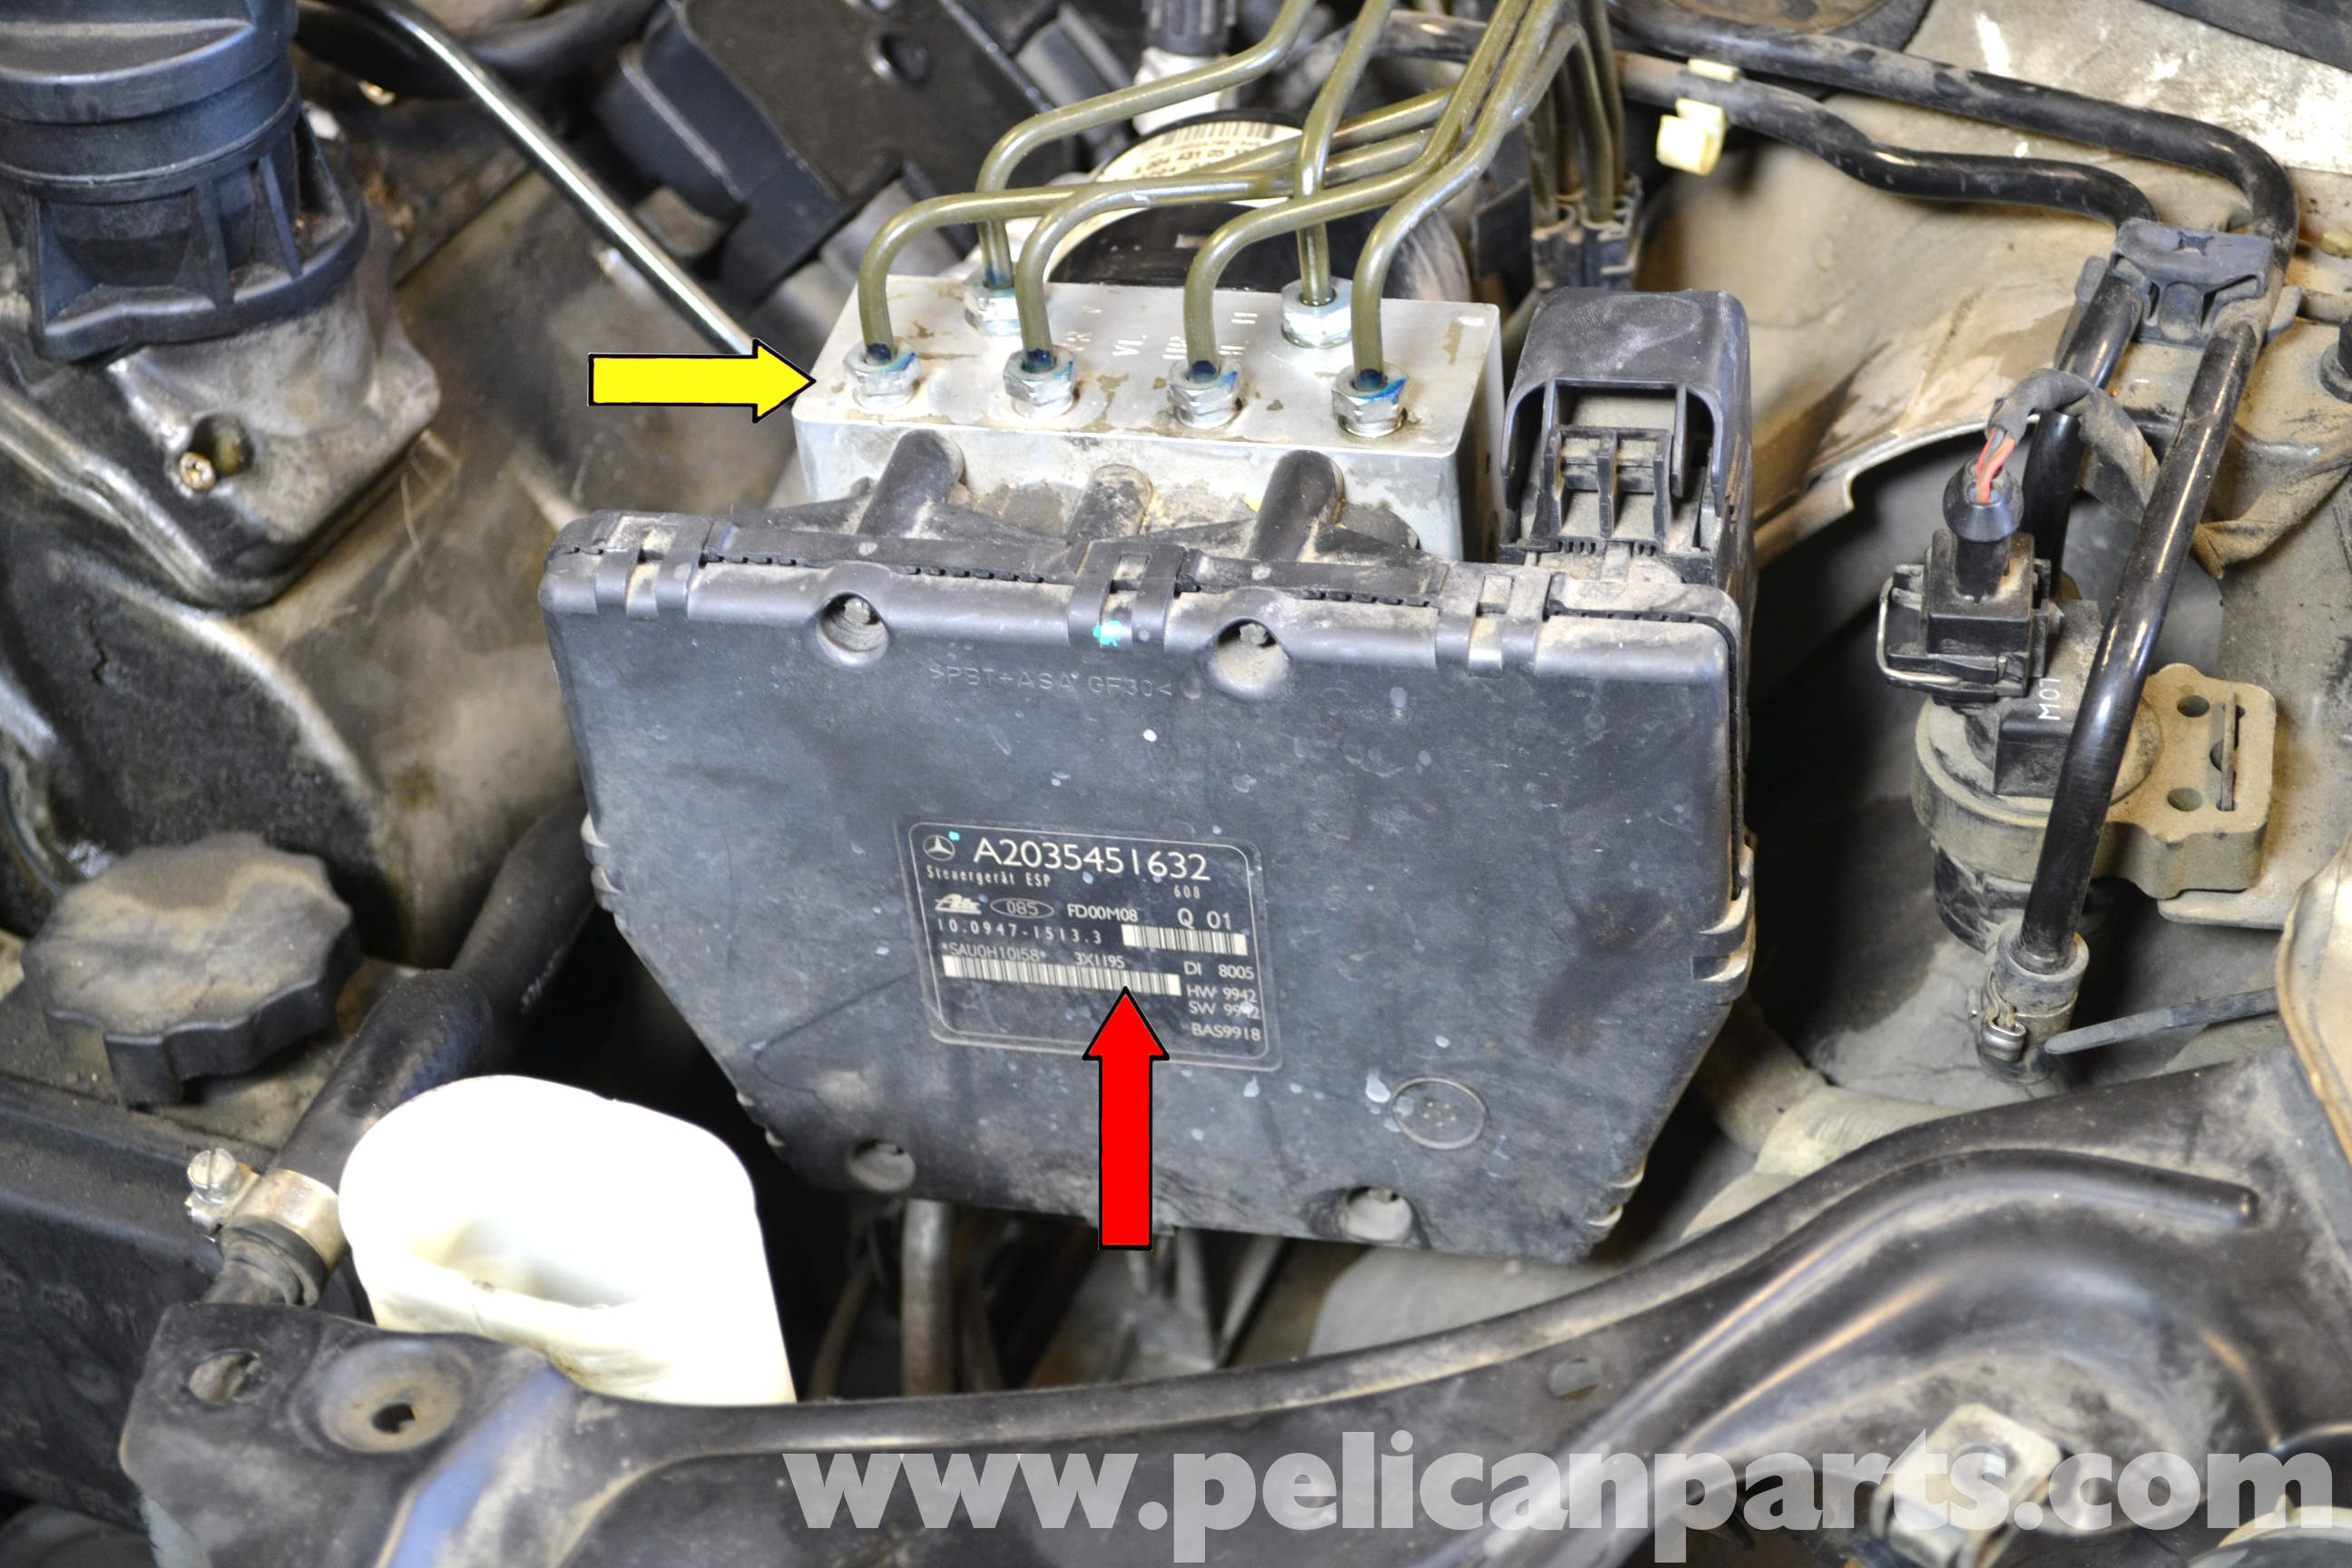 2005 chevy tahoe fuse box location